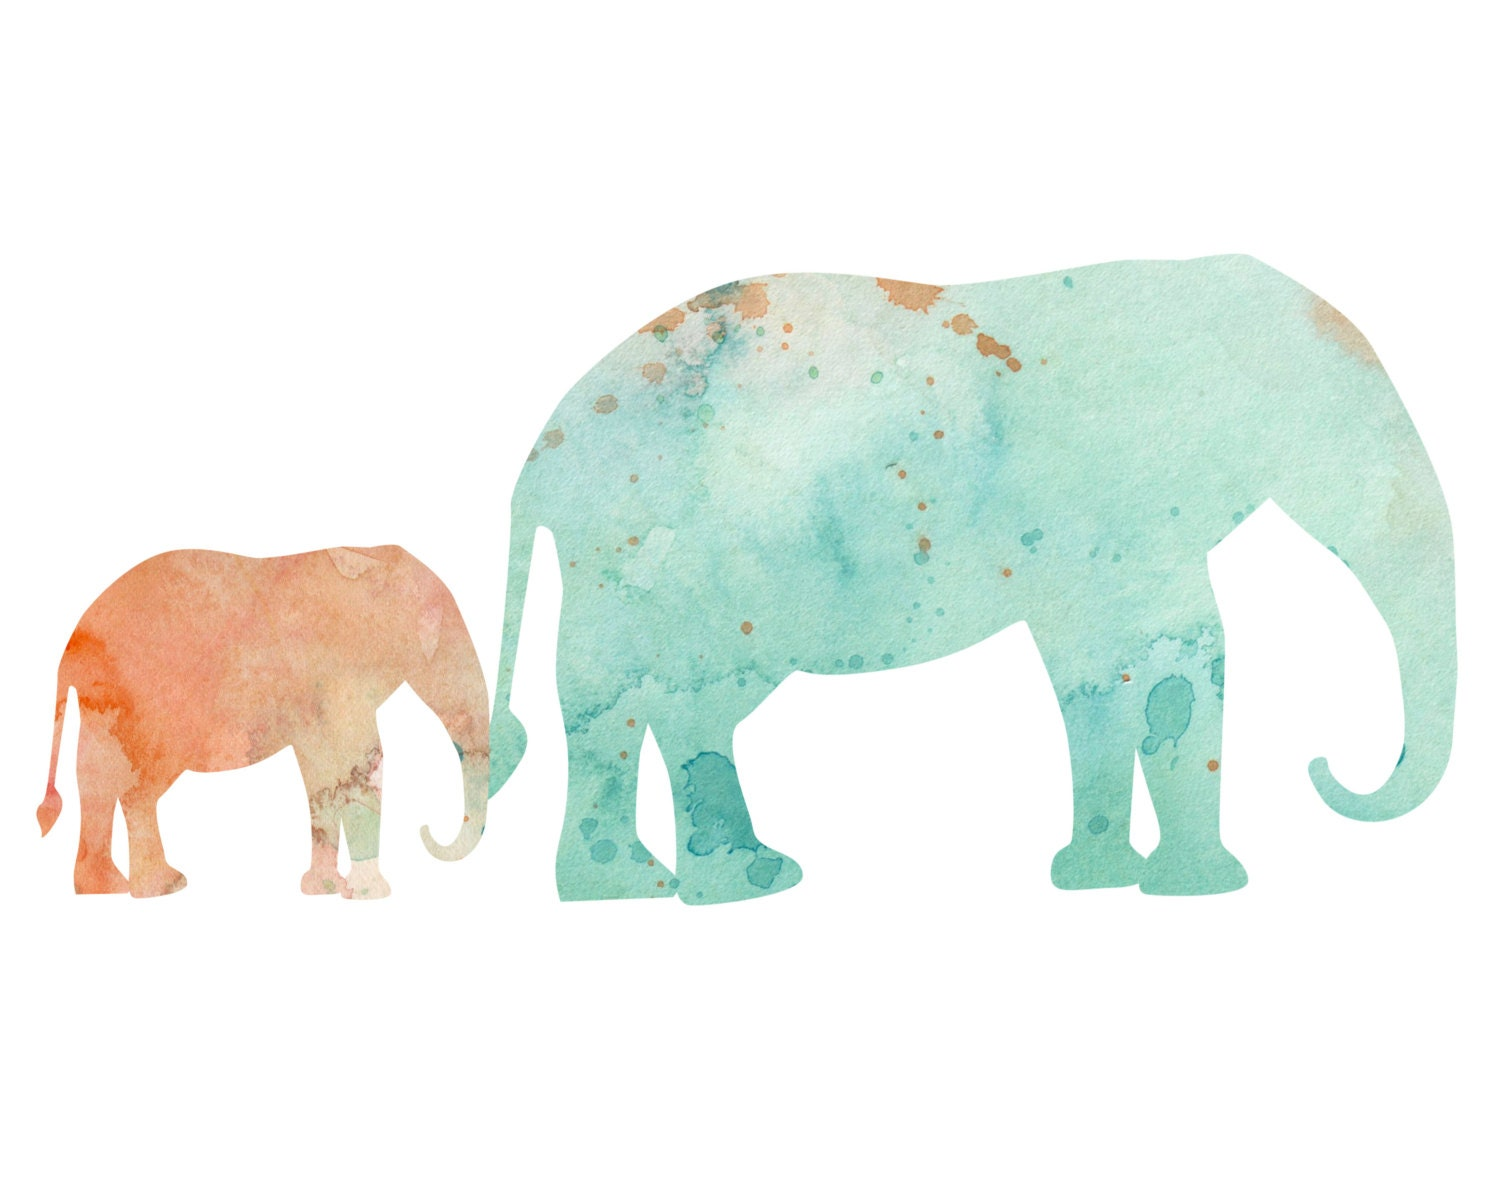 Peach and Mint Elephants holding tails by TheDailyWatercolor